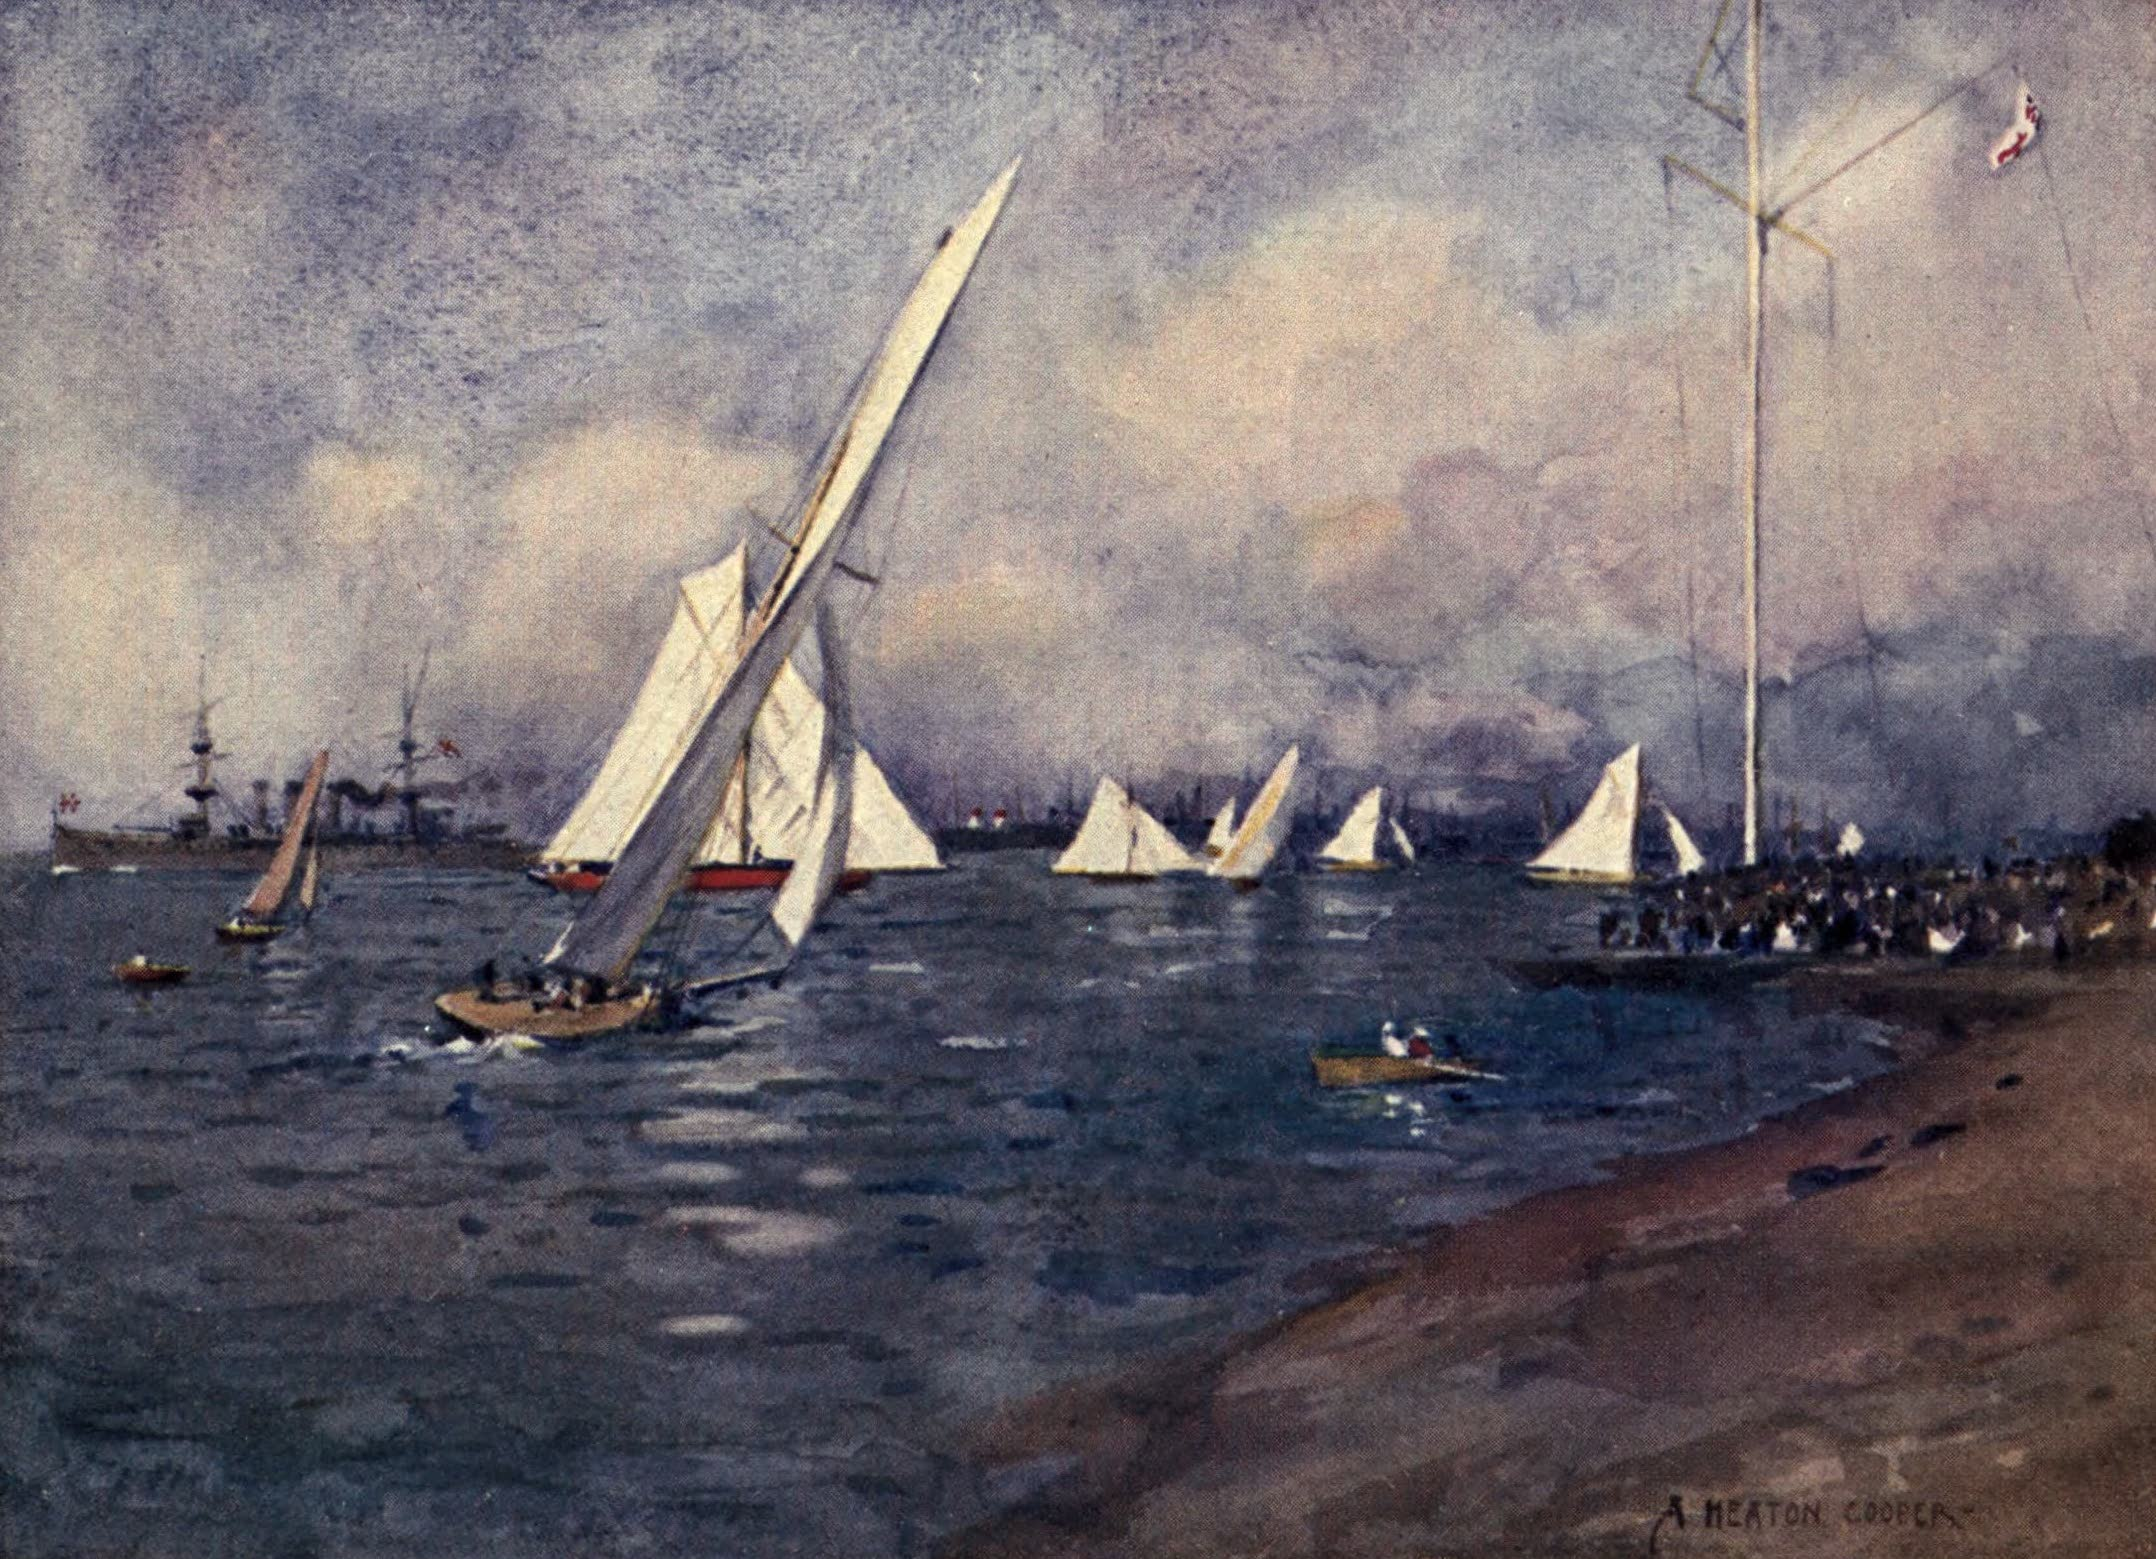 Isle of Wight Painted and Described - Yachting at Cowes (1908)